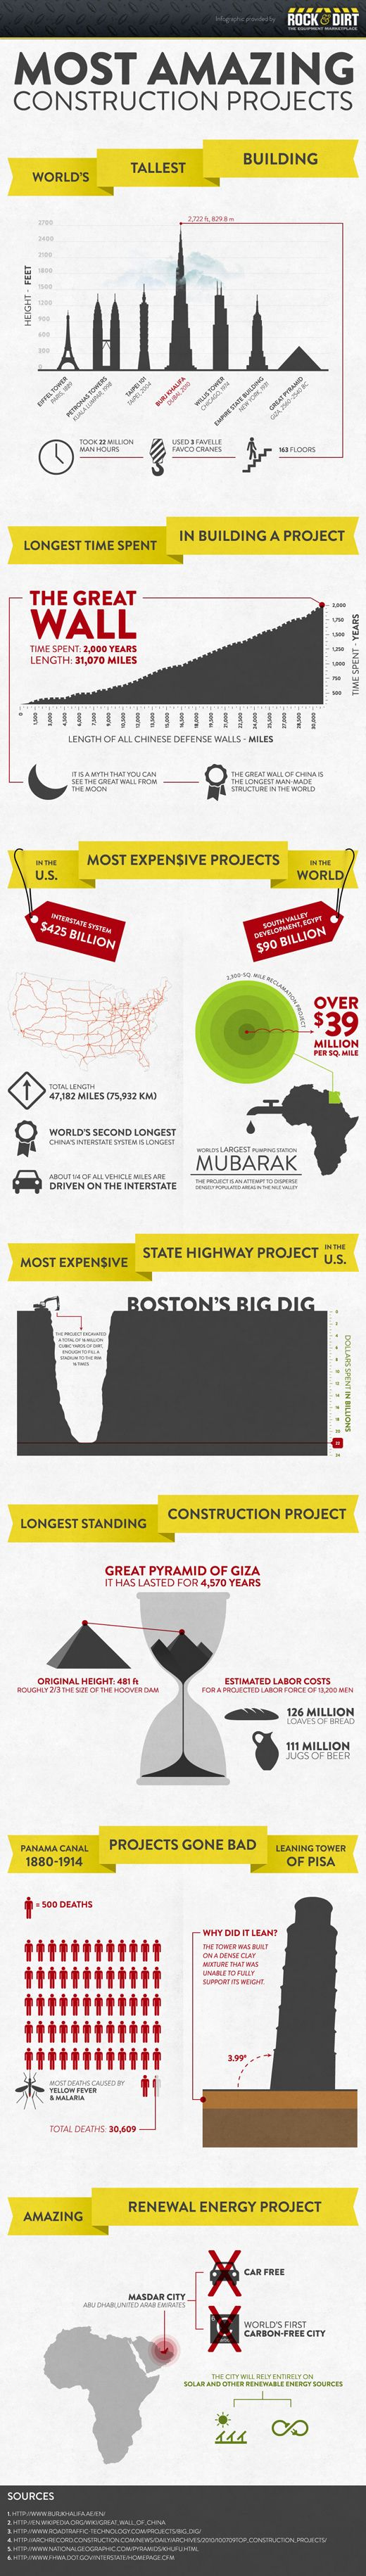 Engineering and construction project with money - Infographic Most Amazing Construction Projects